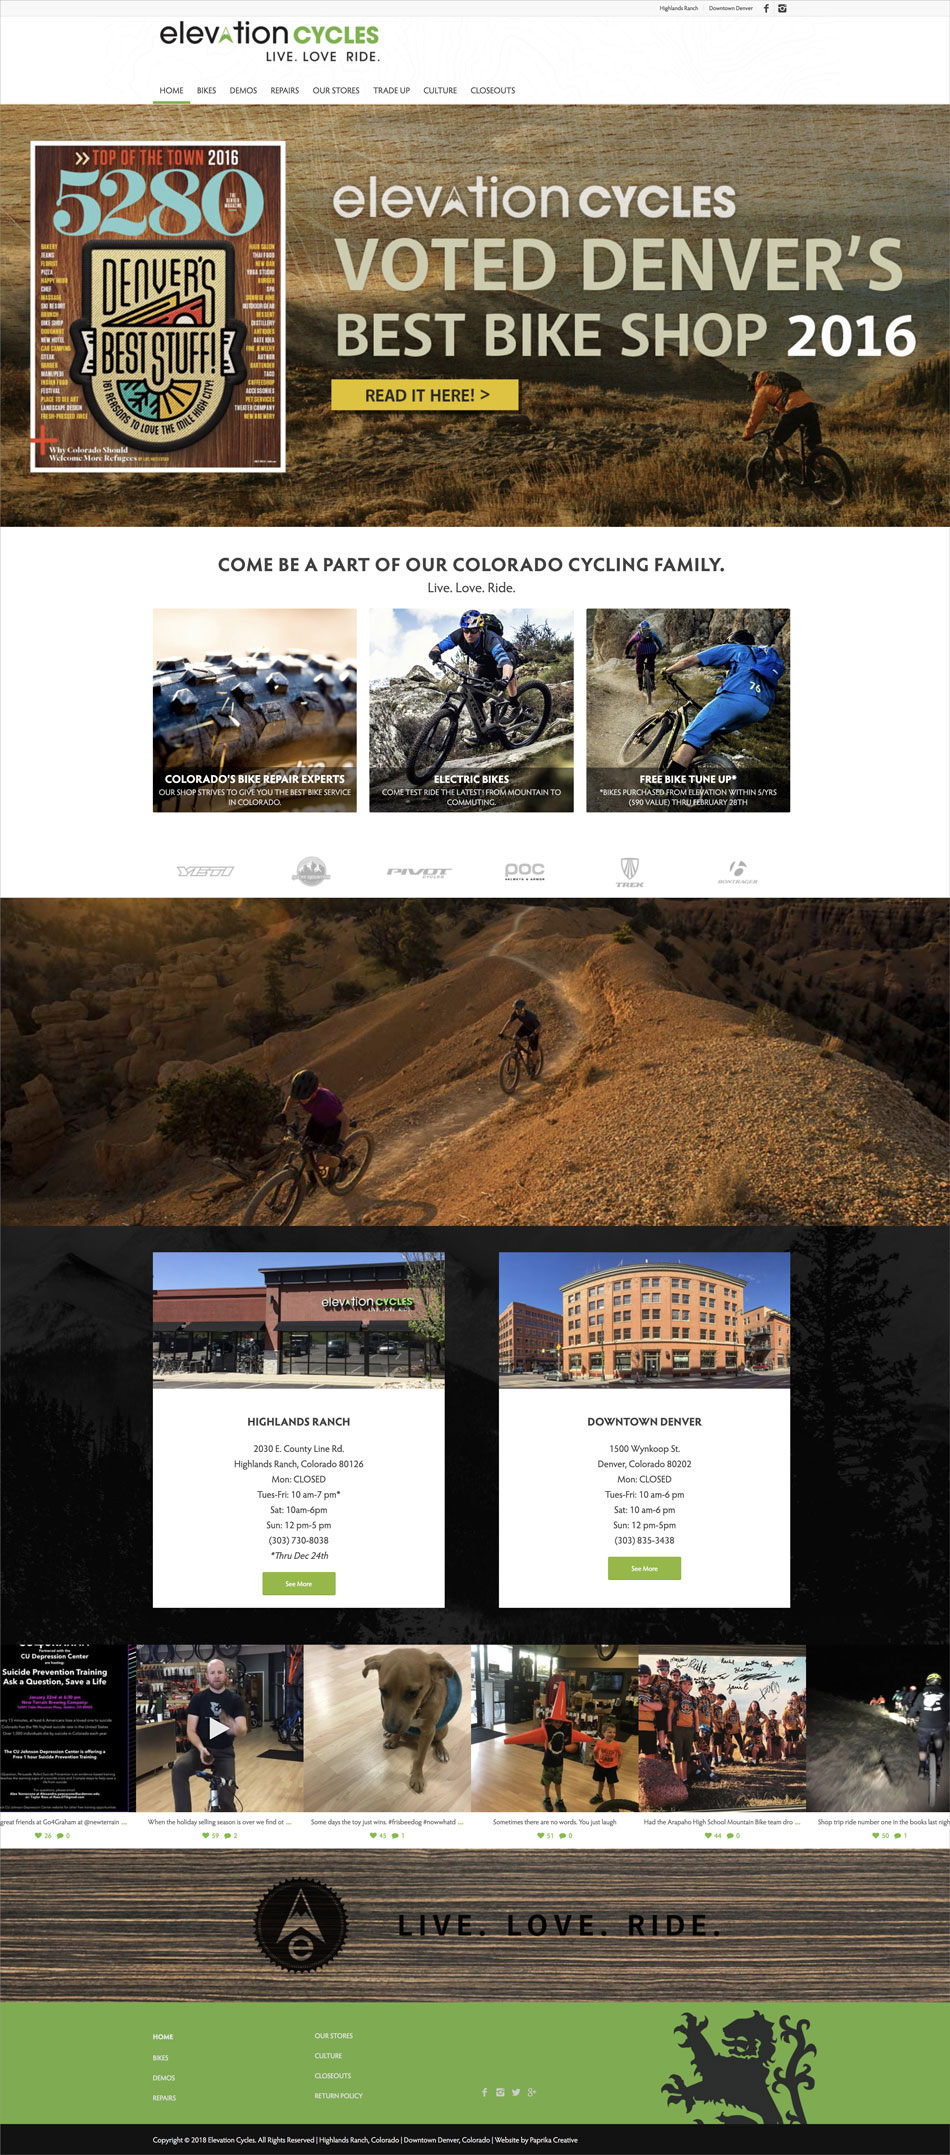 elevationcycles.com website v2